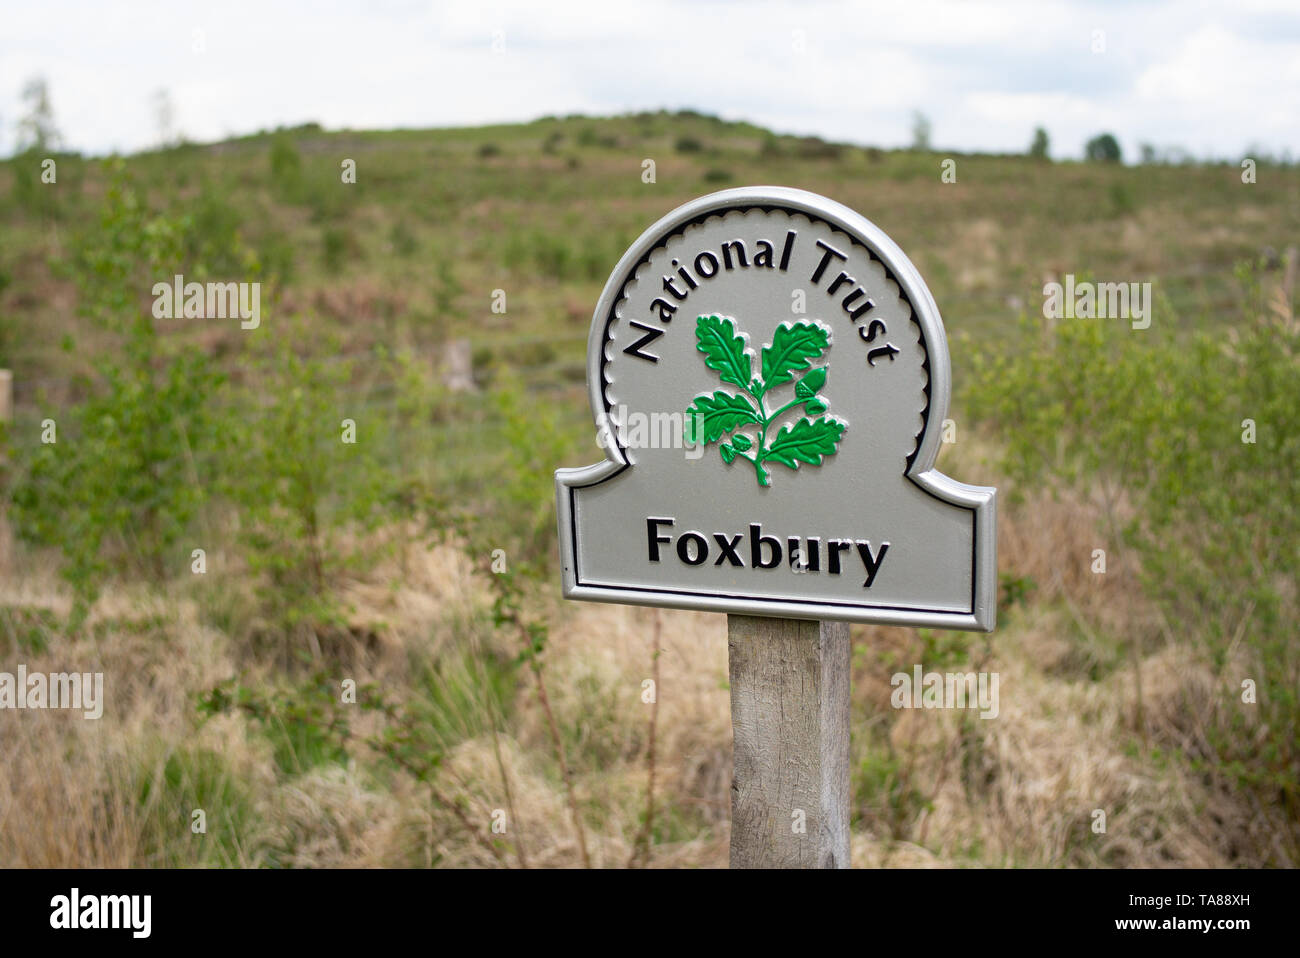 Foxbury National trust silver sign, Foxbury is 150 hectare site of heathland and woodland that protects wildlife and is closed to the public. Stock Photo